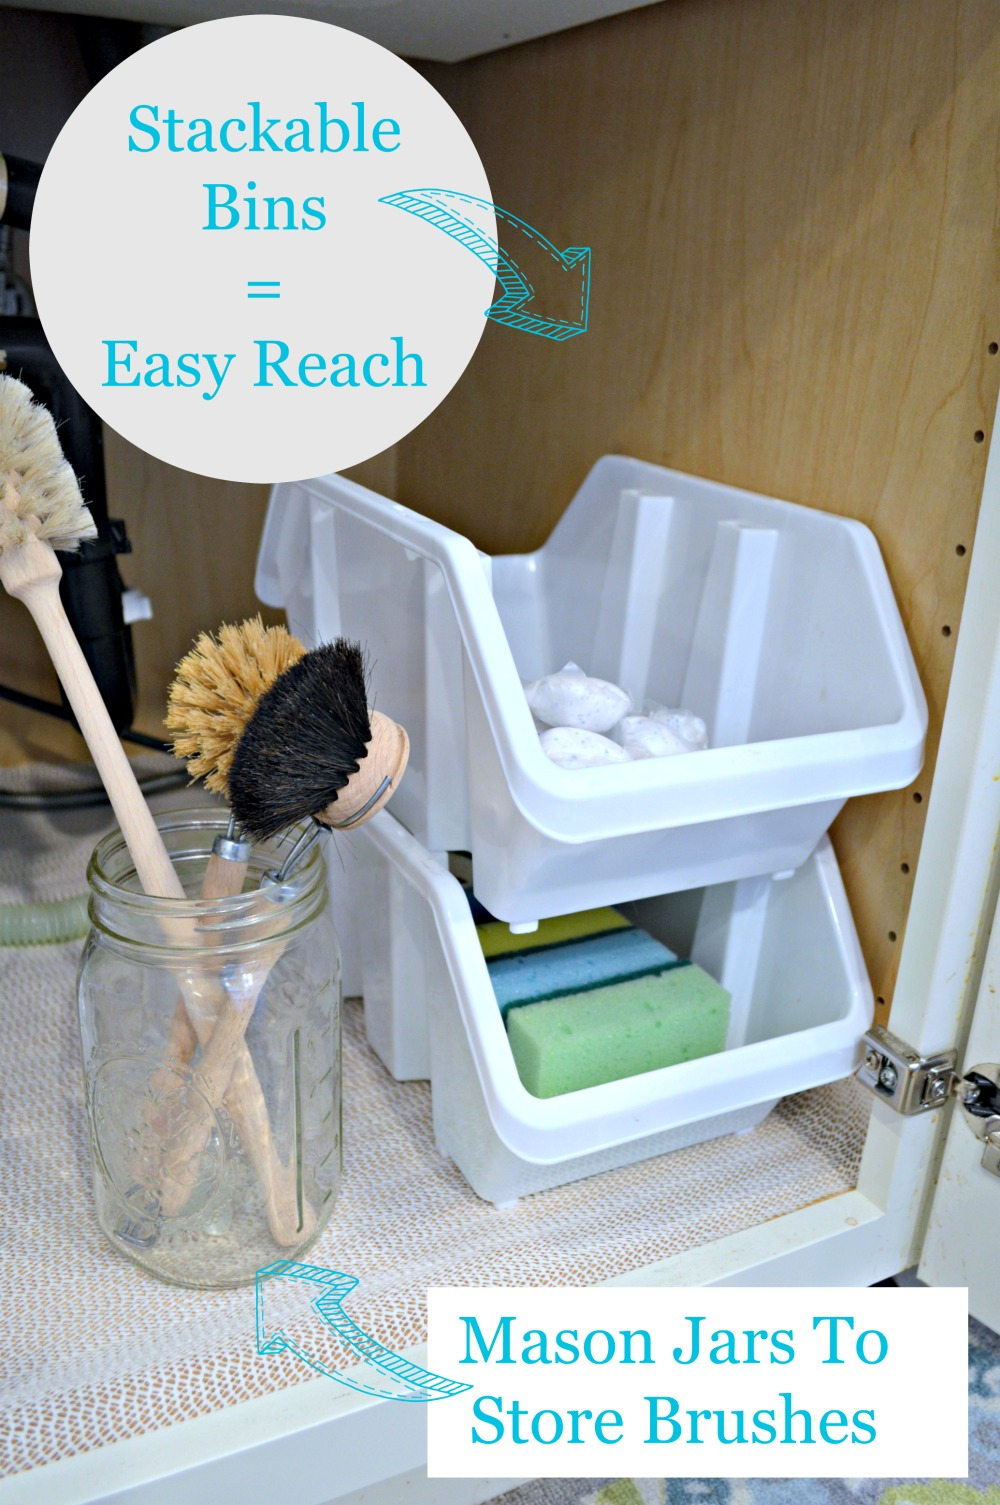 Great tips on organizing everything under the kitchen sink